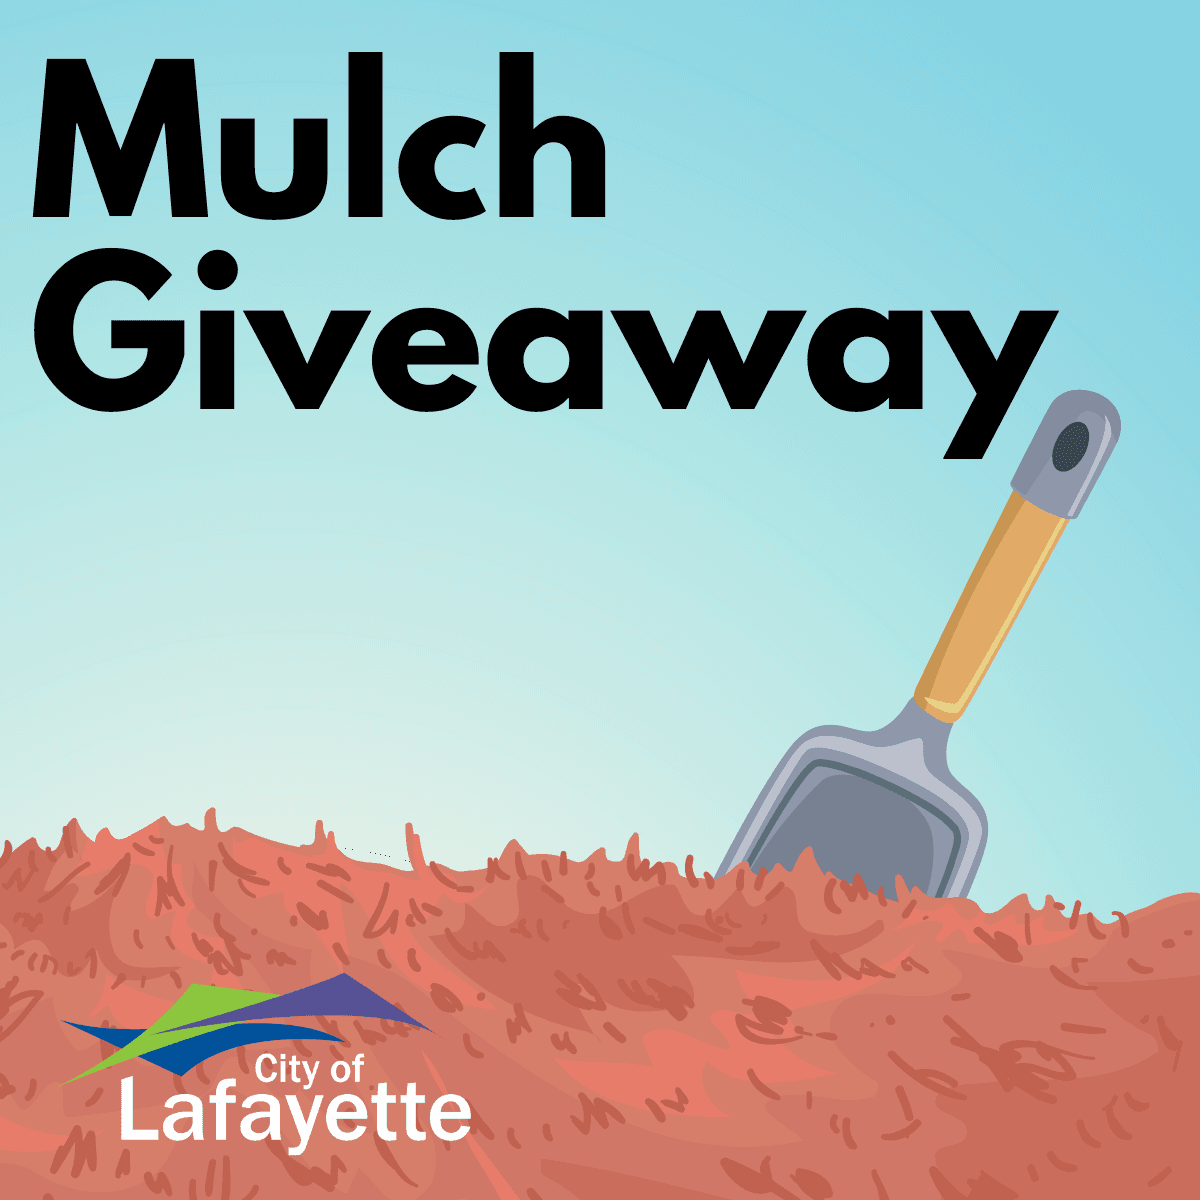 Mulch giveaway event graphic with mulch pile and garden tool, with City of Lafayette logo on bottom